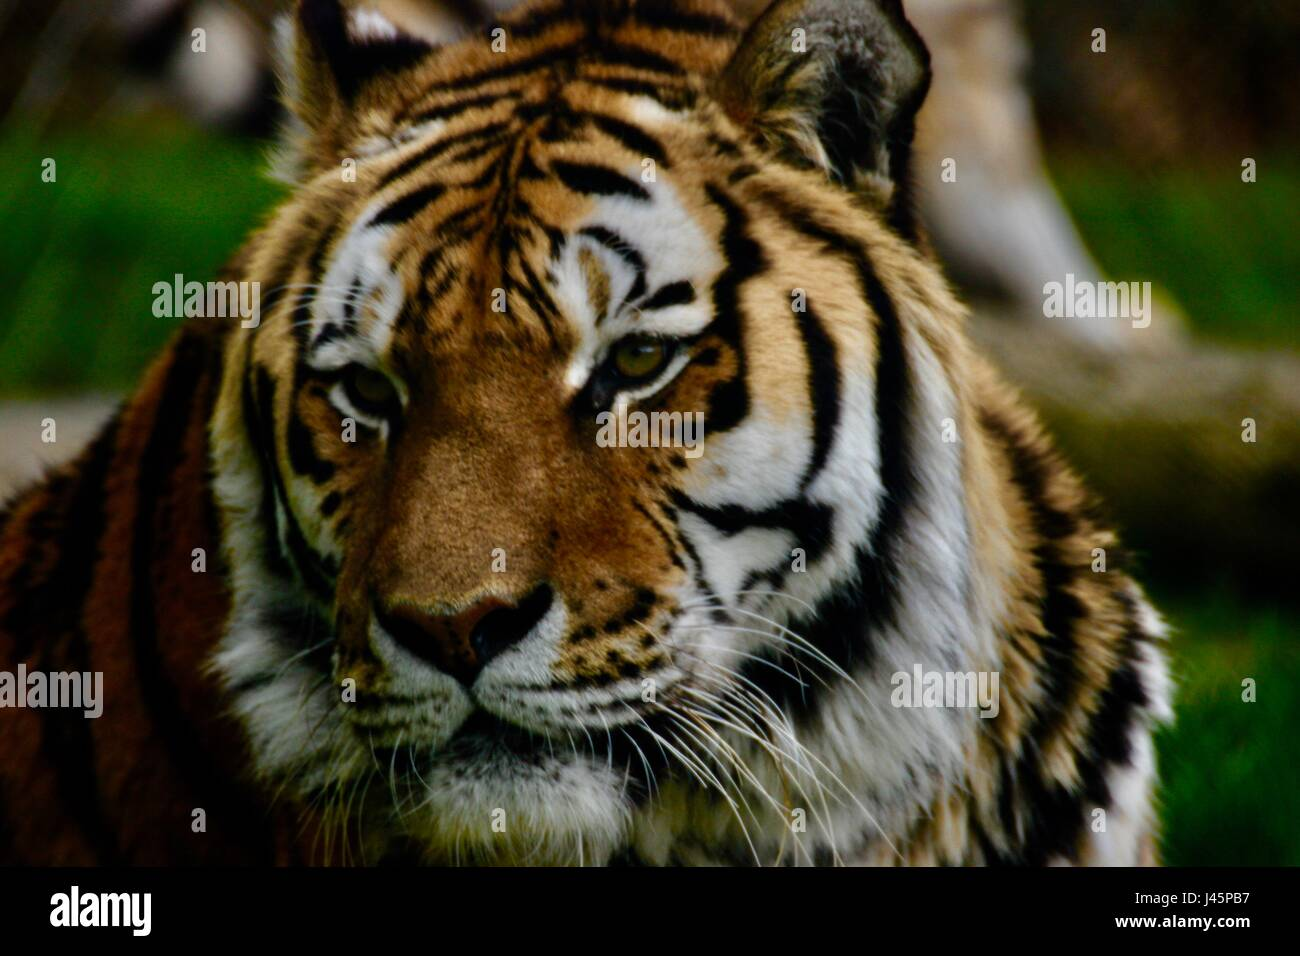 Tiger headshots - Stock Image